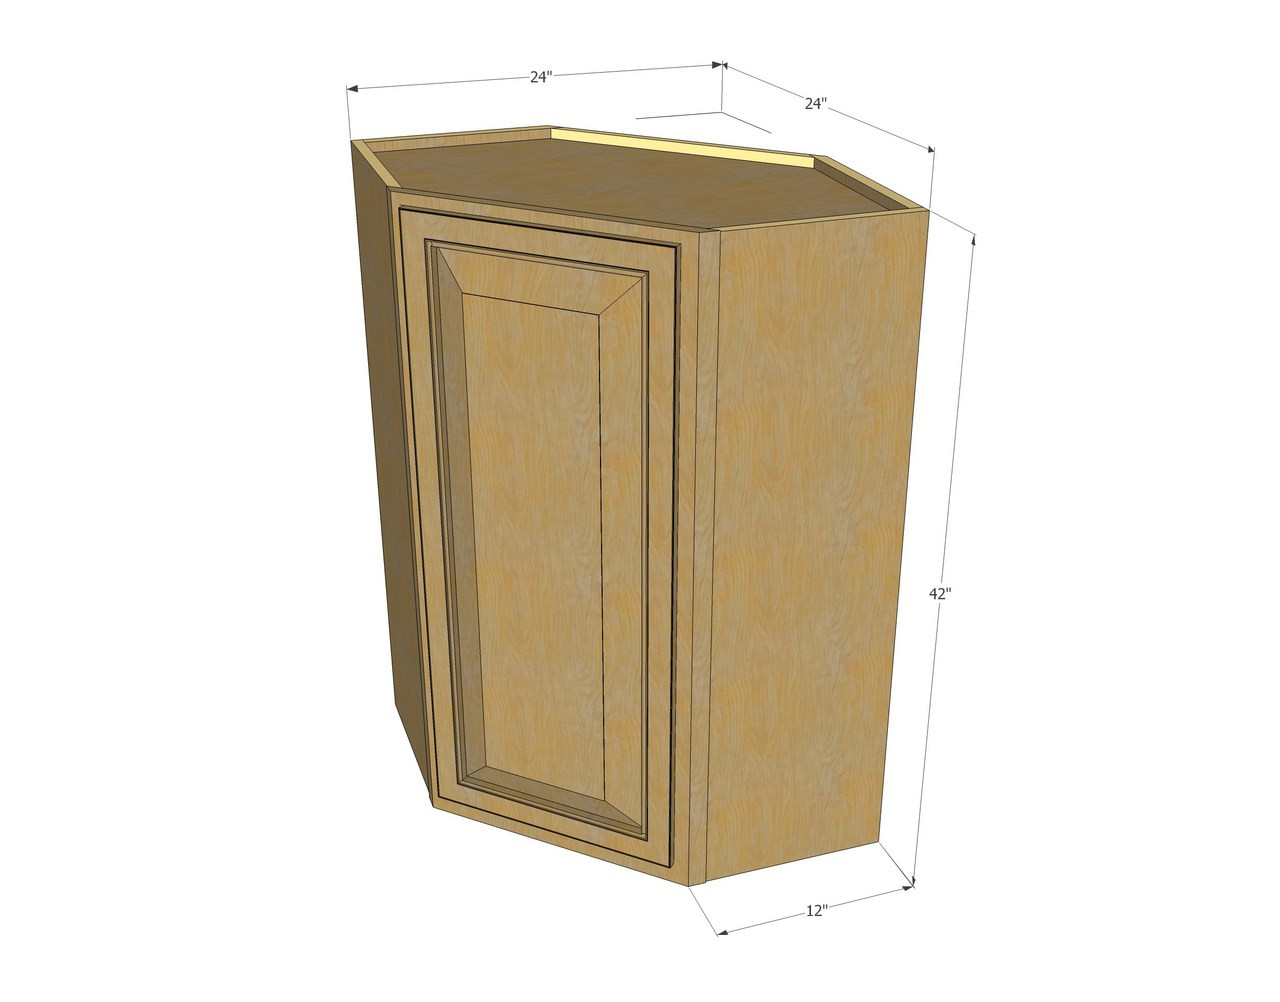 Regal oak diagonal corner wall cabinet 24 inch wide x 42 for Kitchen cabinets 42 inches high